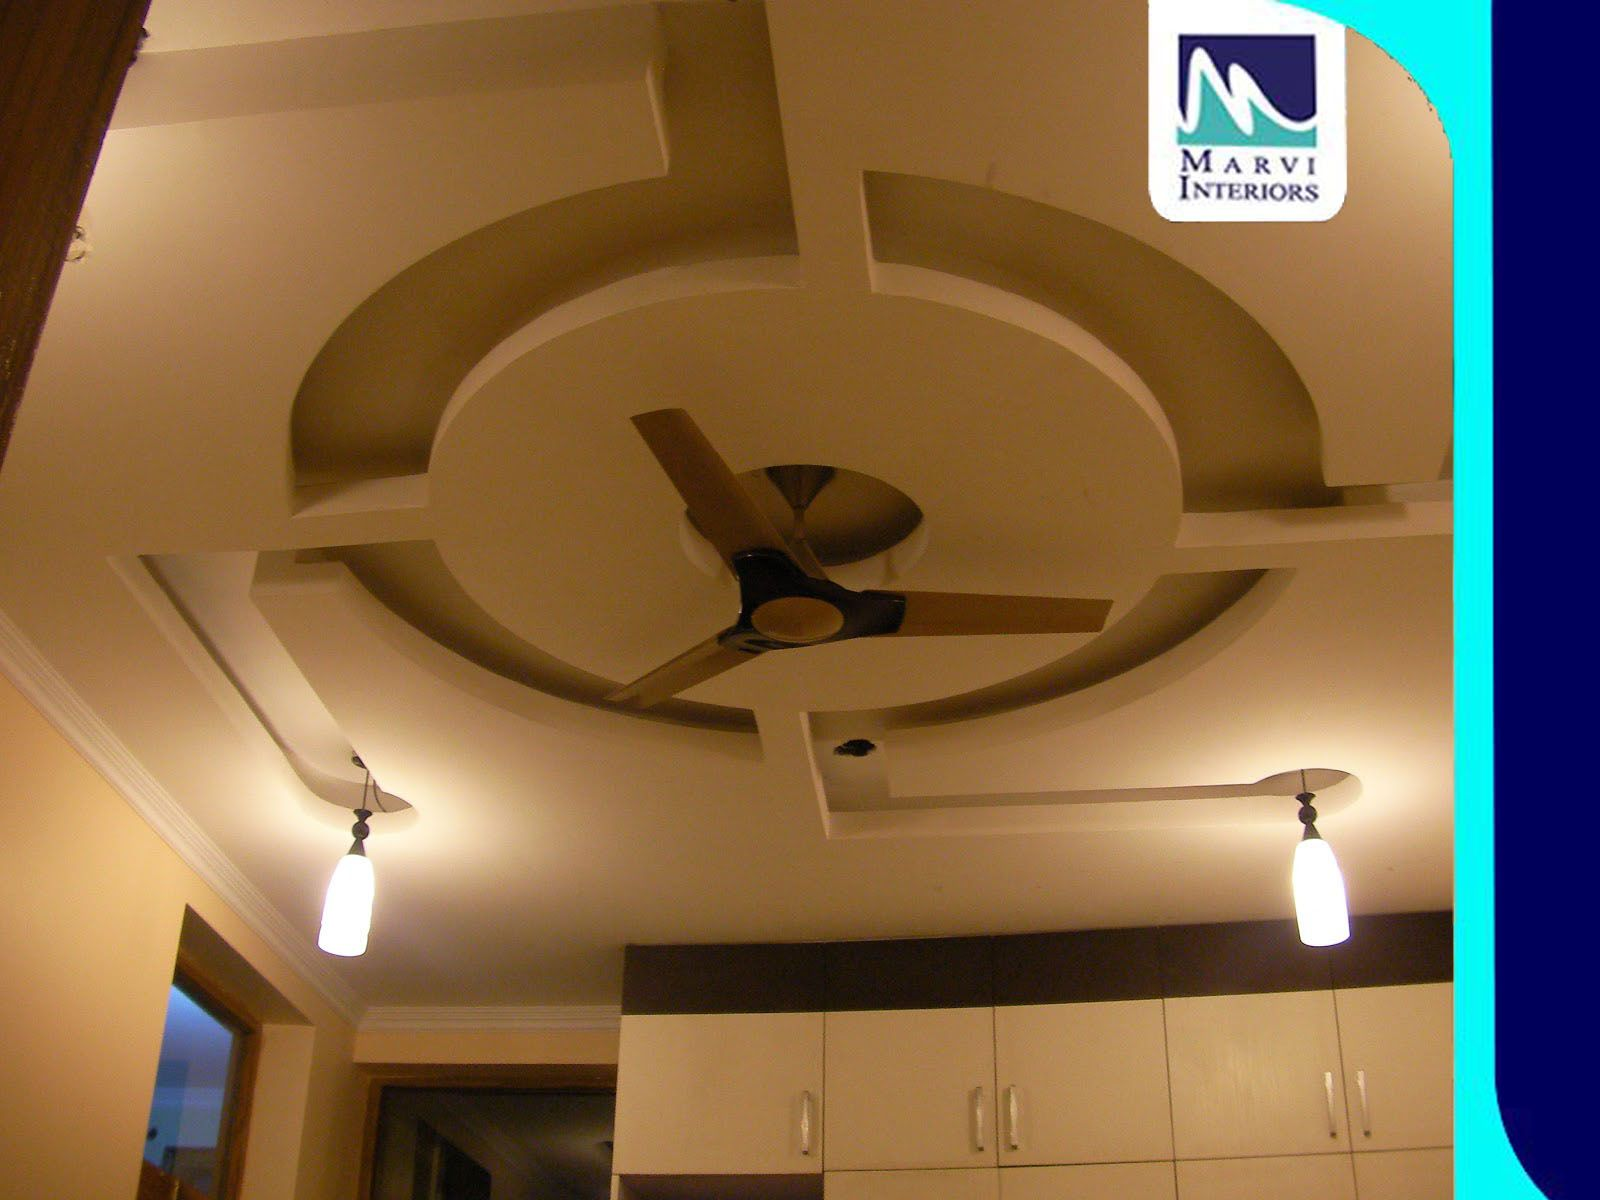 Marvi Interiors Is A Pioneer And Leader In Karachi And Across Pakistan In False Ceilings And Offers A Wi False Ceiling Design Pop Ceiling Design Ceiling Design